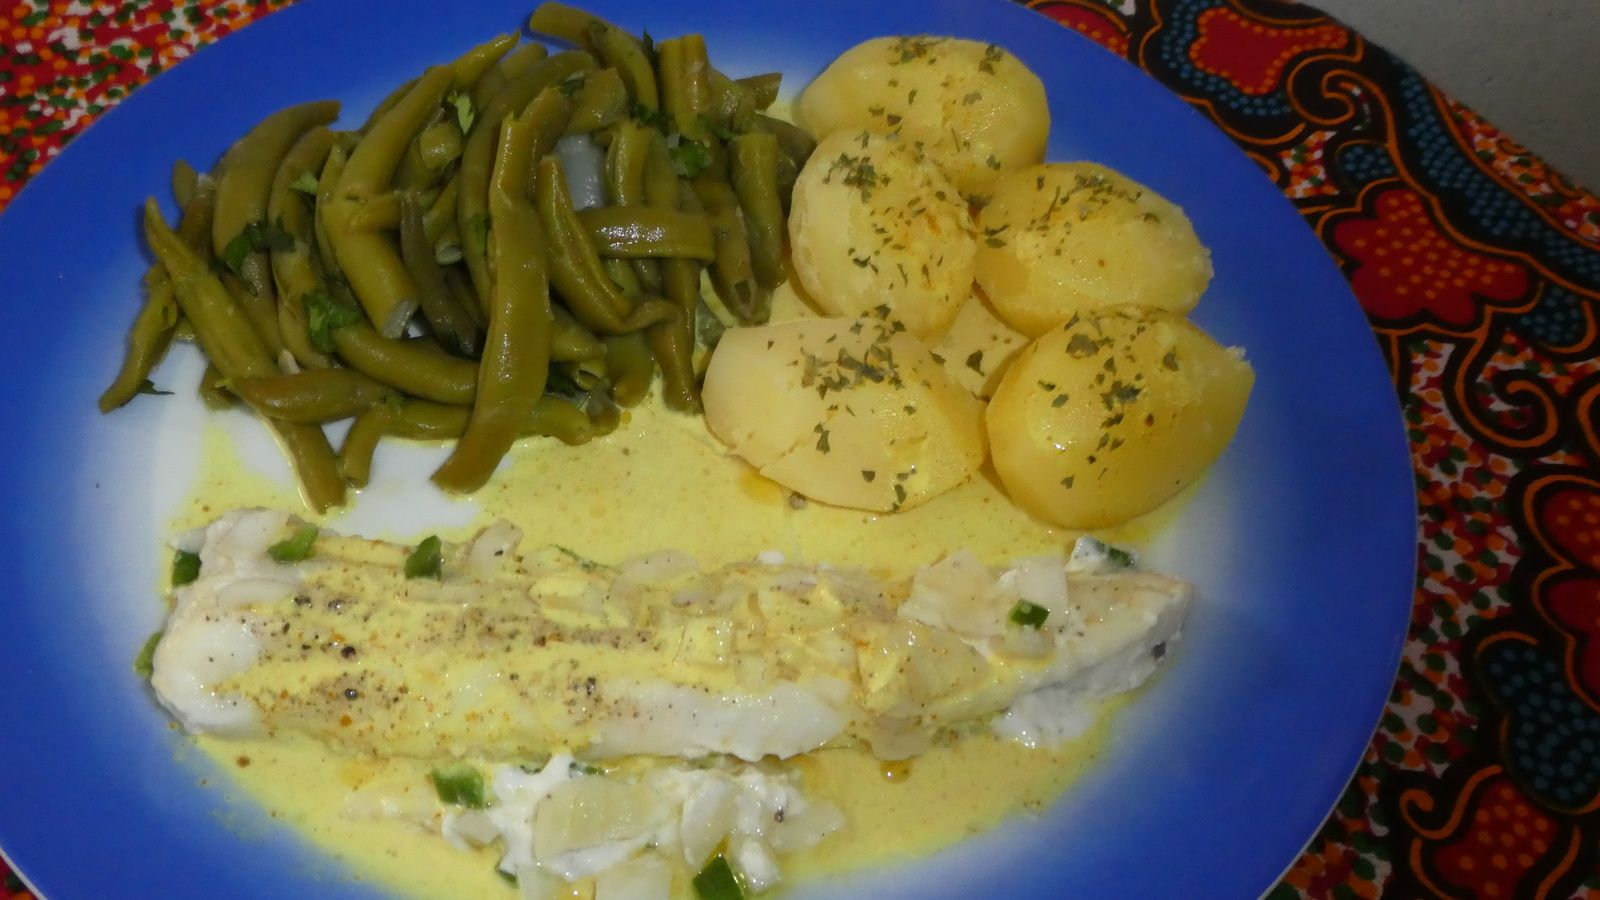 Poisson blanc sauce curry blogs de cuisine - Cuisiner du poisson blanc ...